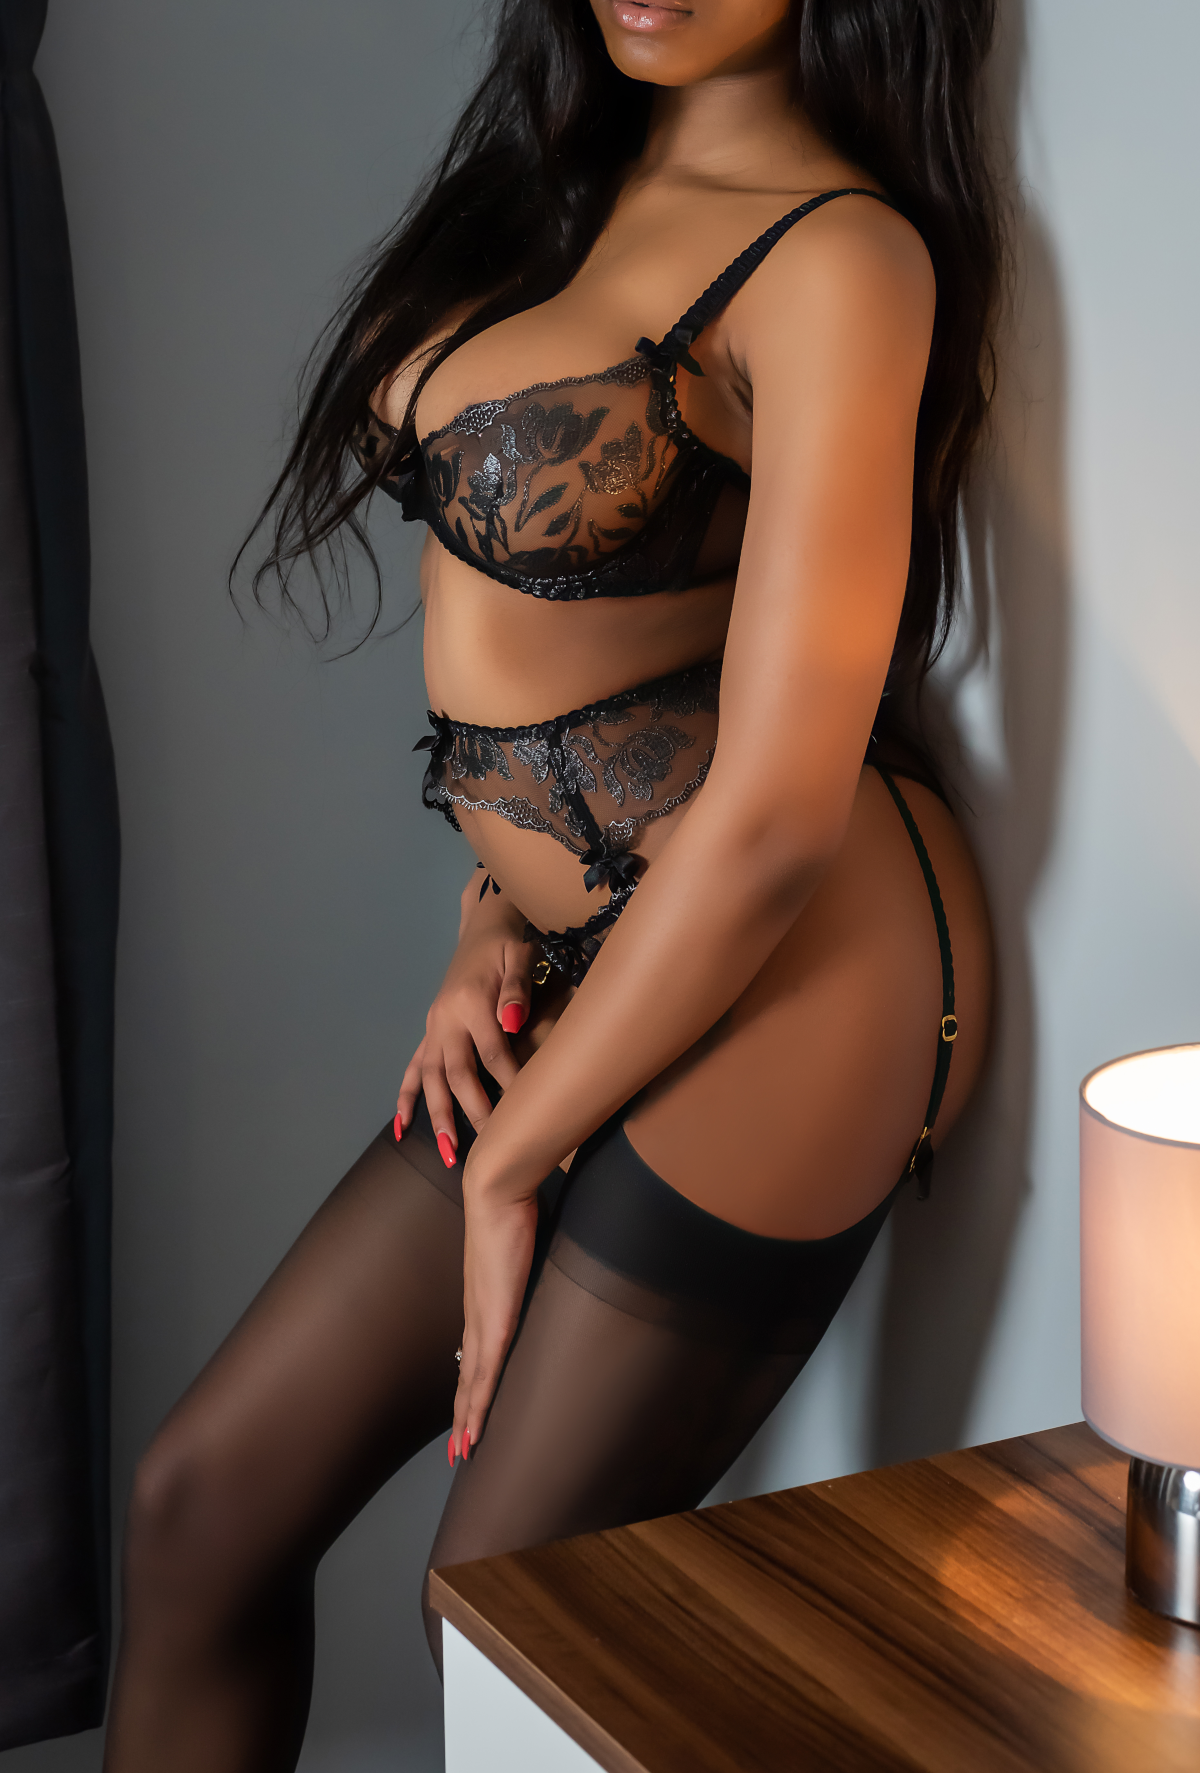 Assume the Position.  - IncallsOne Hour  £180.00Two Hours  £330.00Four Hours  £630.00OutcallsOne Hour  £250.00Two Hours  £430.00Four Hours  £790.00Overnight  £1500.00Please note that engagements lasting longer than three hours should include an event, drinks and/or dinner. This can be done indoors if you prefer discretion.Escape with me.I am always passport ready and able to travel to you wherever you are, If you'd like to fly me out, please get in touch so that we can discuss.